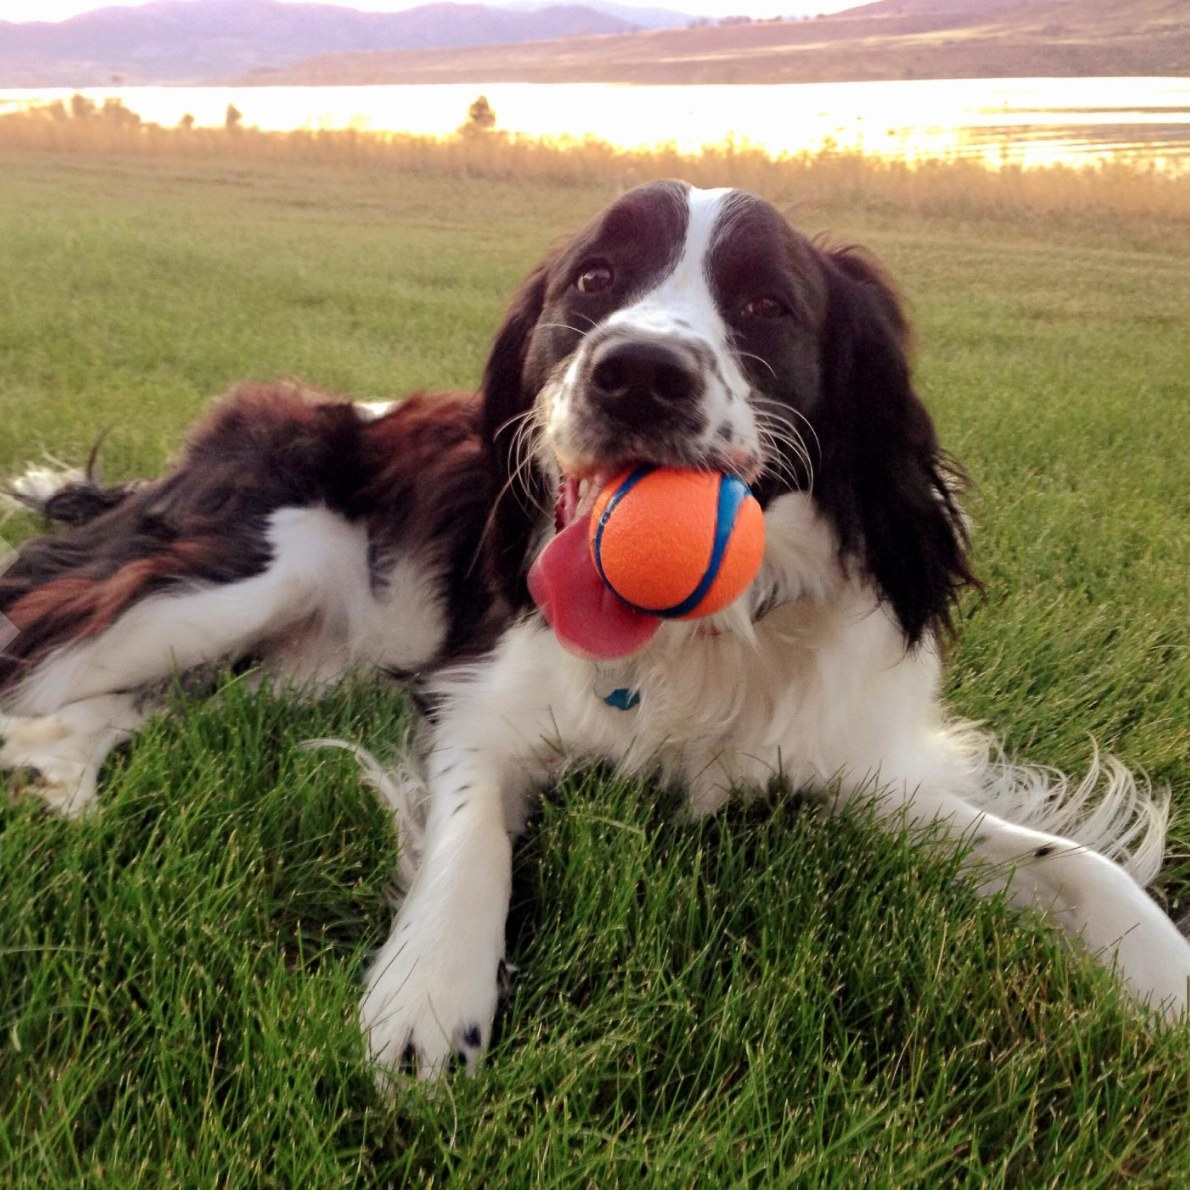 Dog holding ball in its mouth